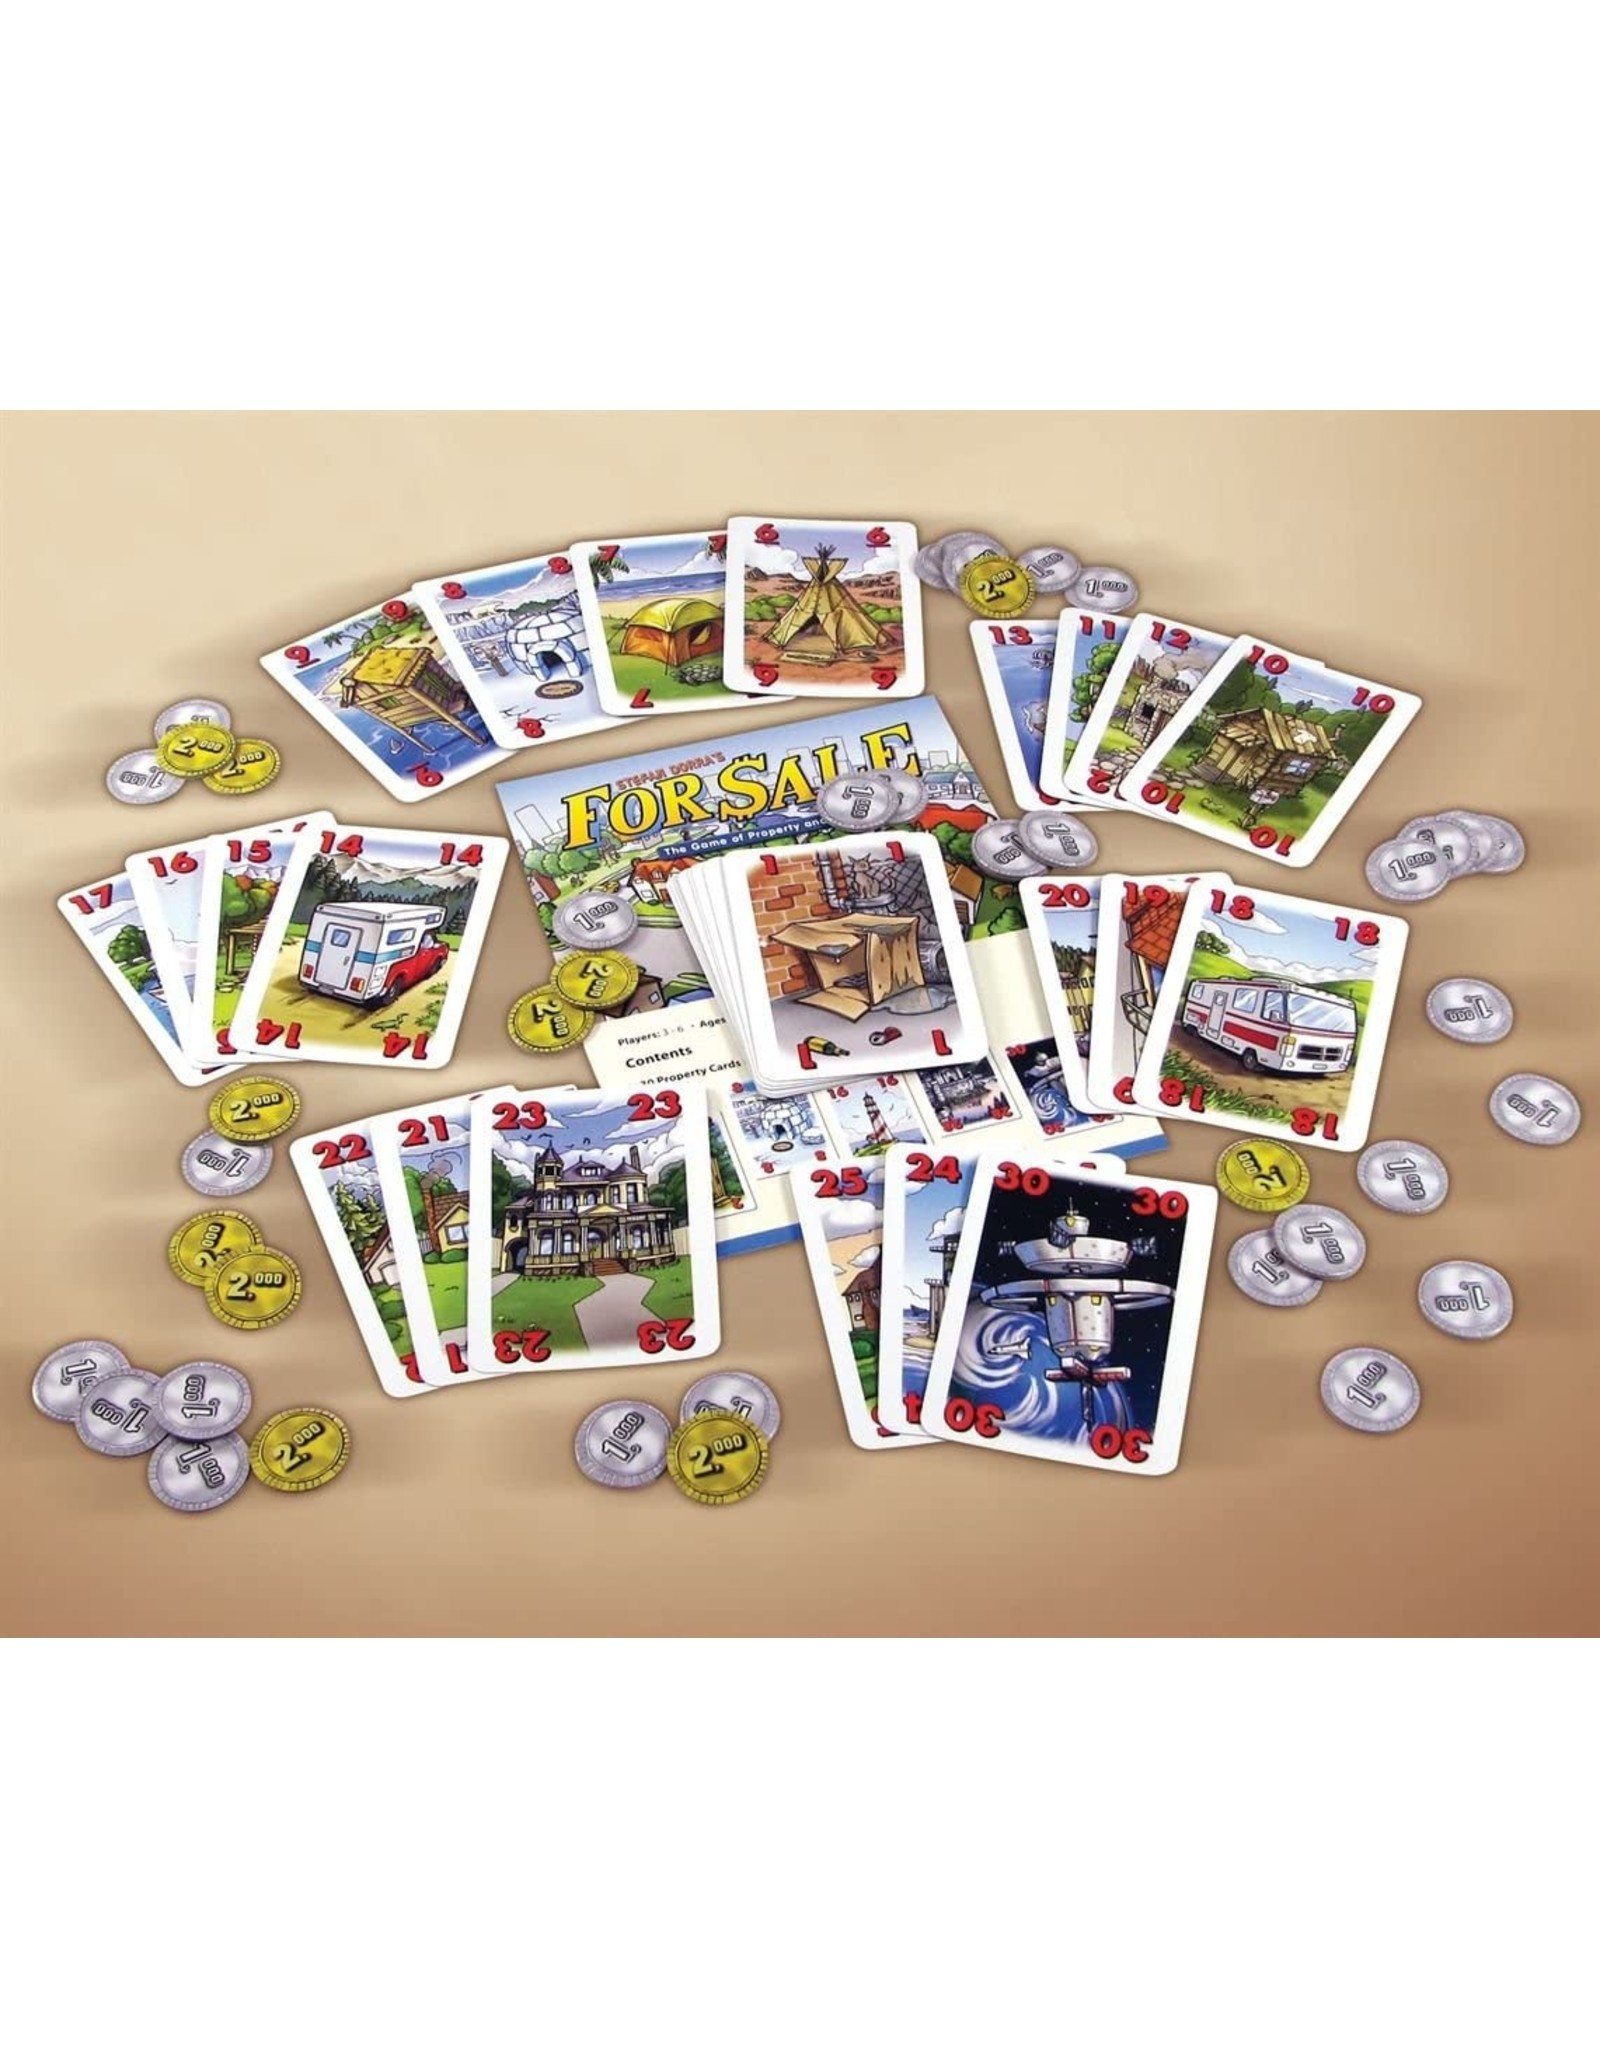 Eagle-Gryphon Games For Sale!